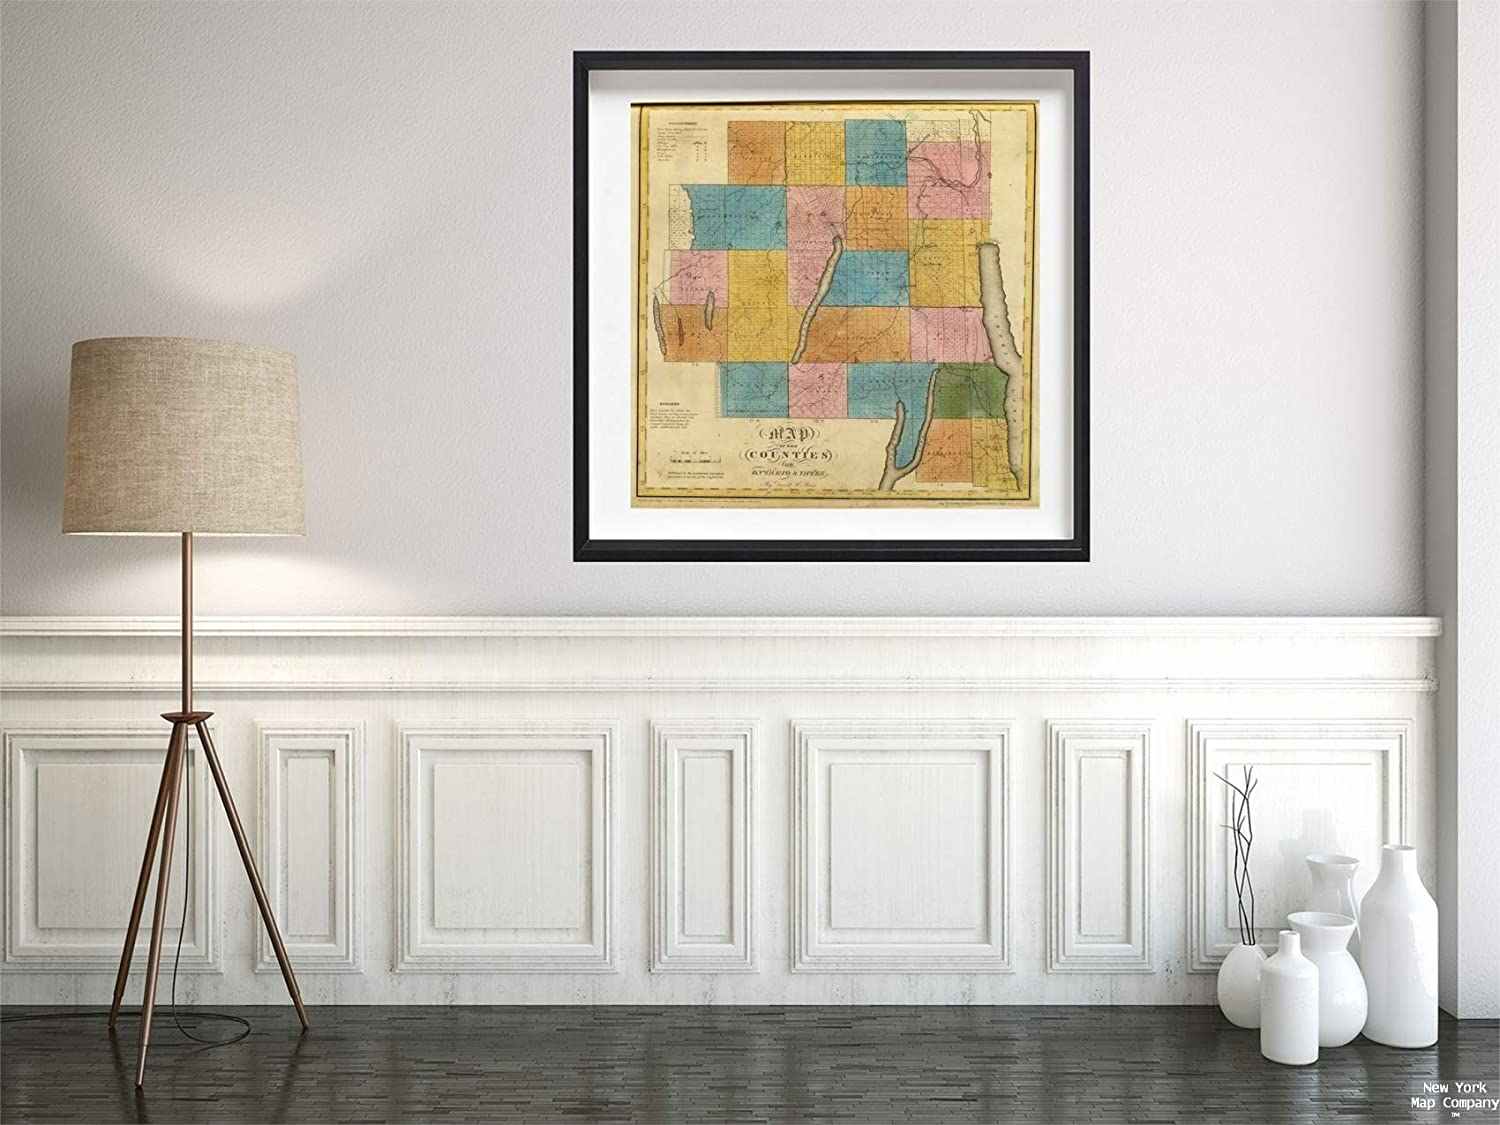 1829 Map|State Atlas Ontario, Yates Counties|Vintage Fine Art Reproduction|Size: 24x24|Ready to Frame